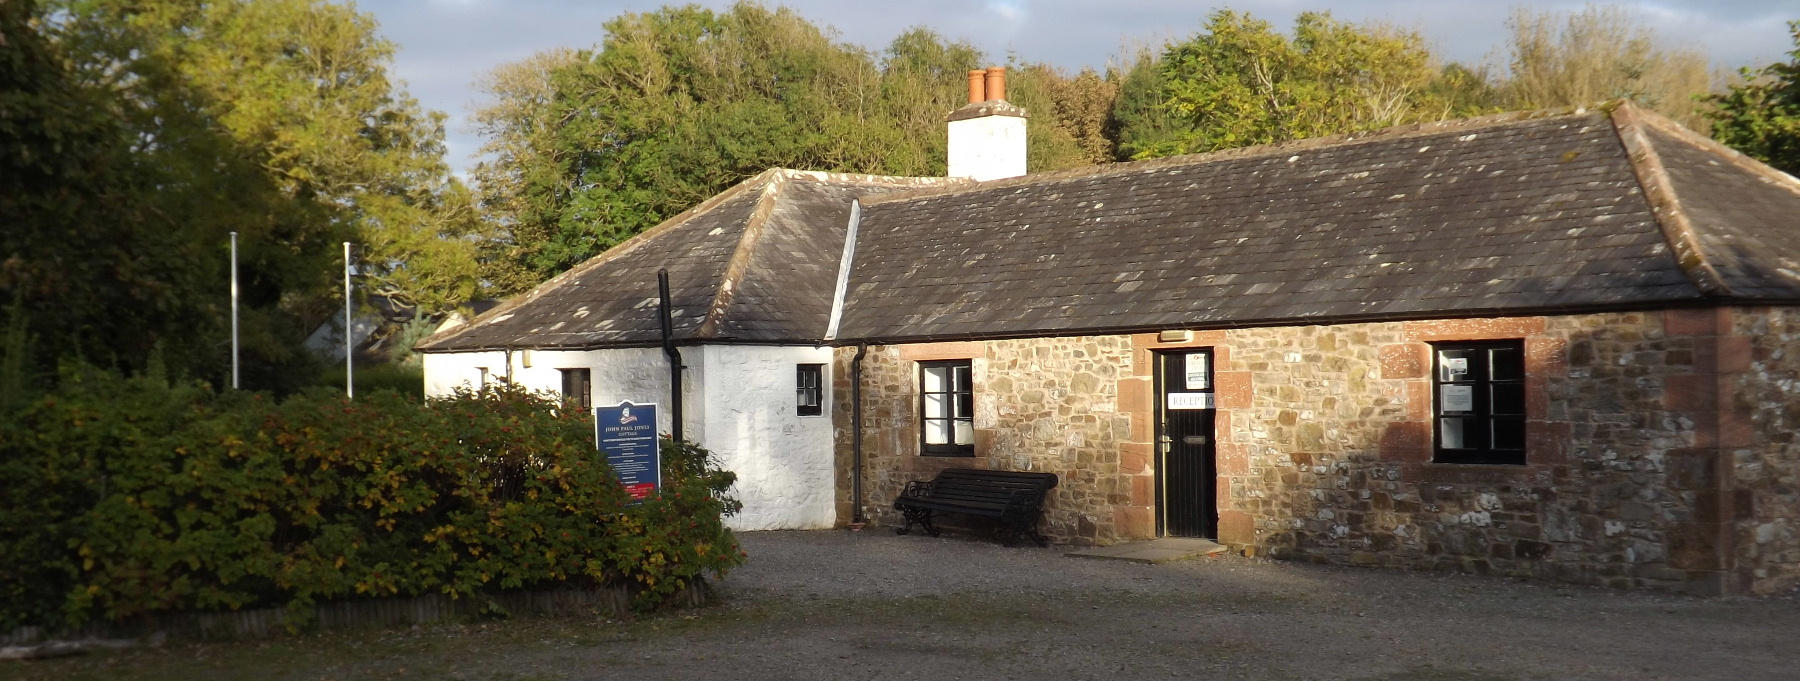 An external view of the cottage that was the birthplace of John Paul Jones and is now a museum charting his life